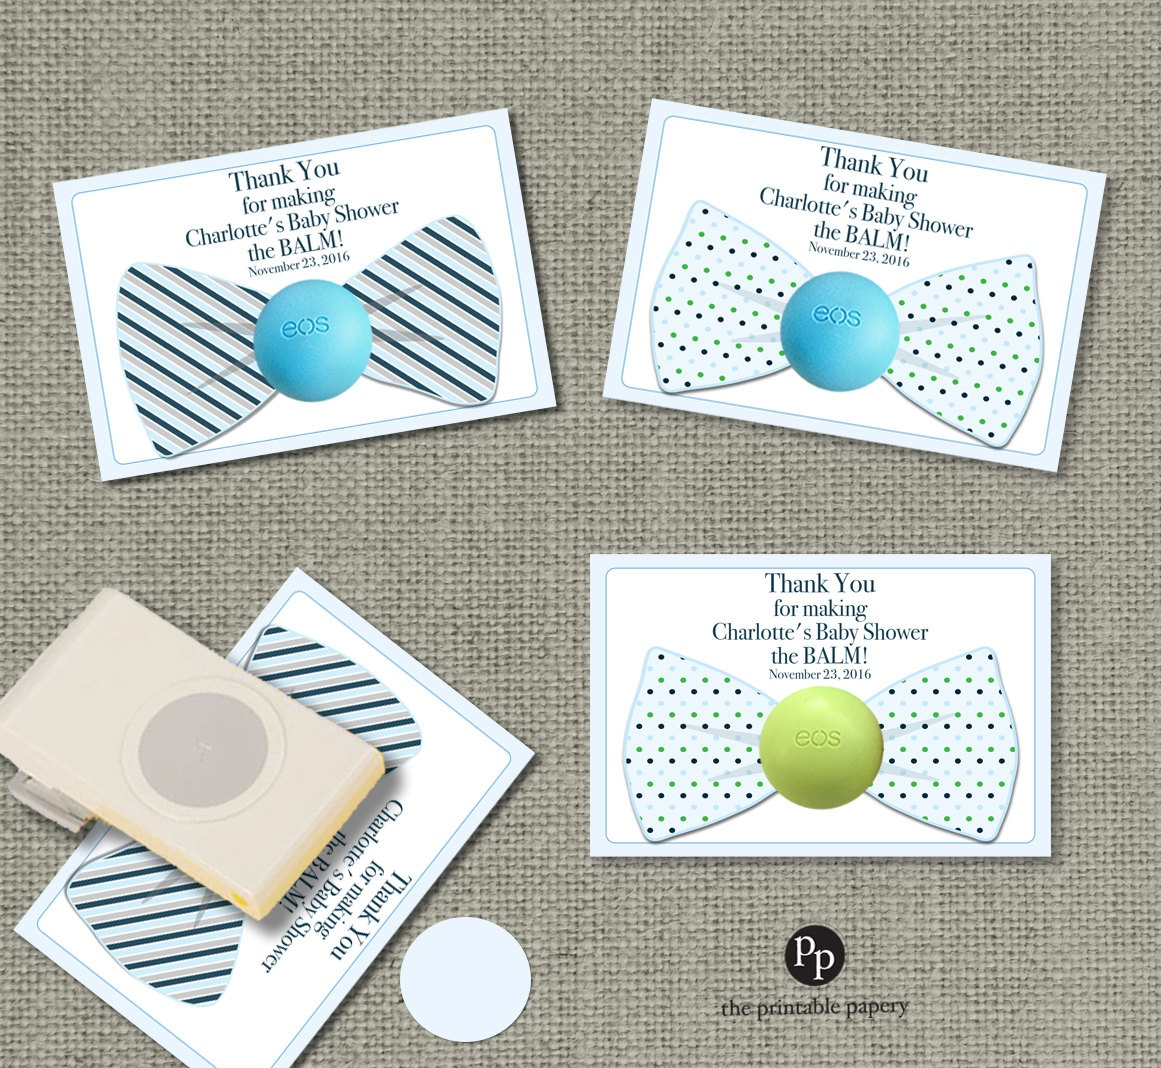 Bow Tie Baby Shower Favors For Eos Lip Balm Gifts | Thank You Favor - Free Printable Eos Baby Shower Template